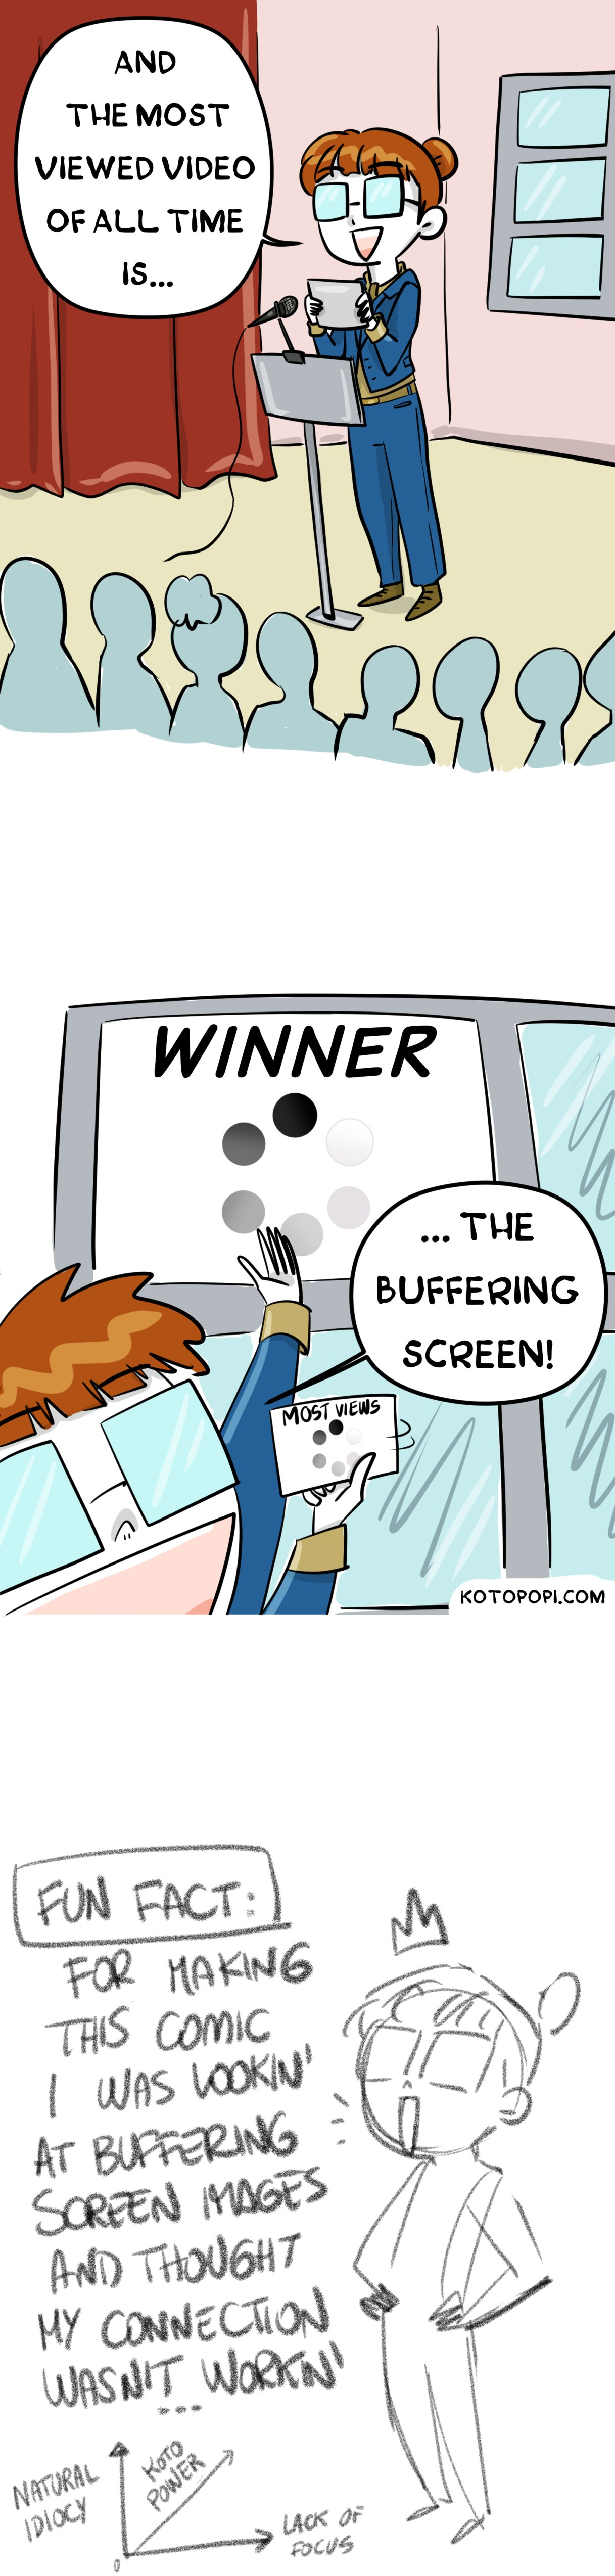 funny pic images meme about views youtube buffer buffering screen logo